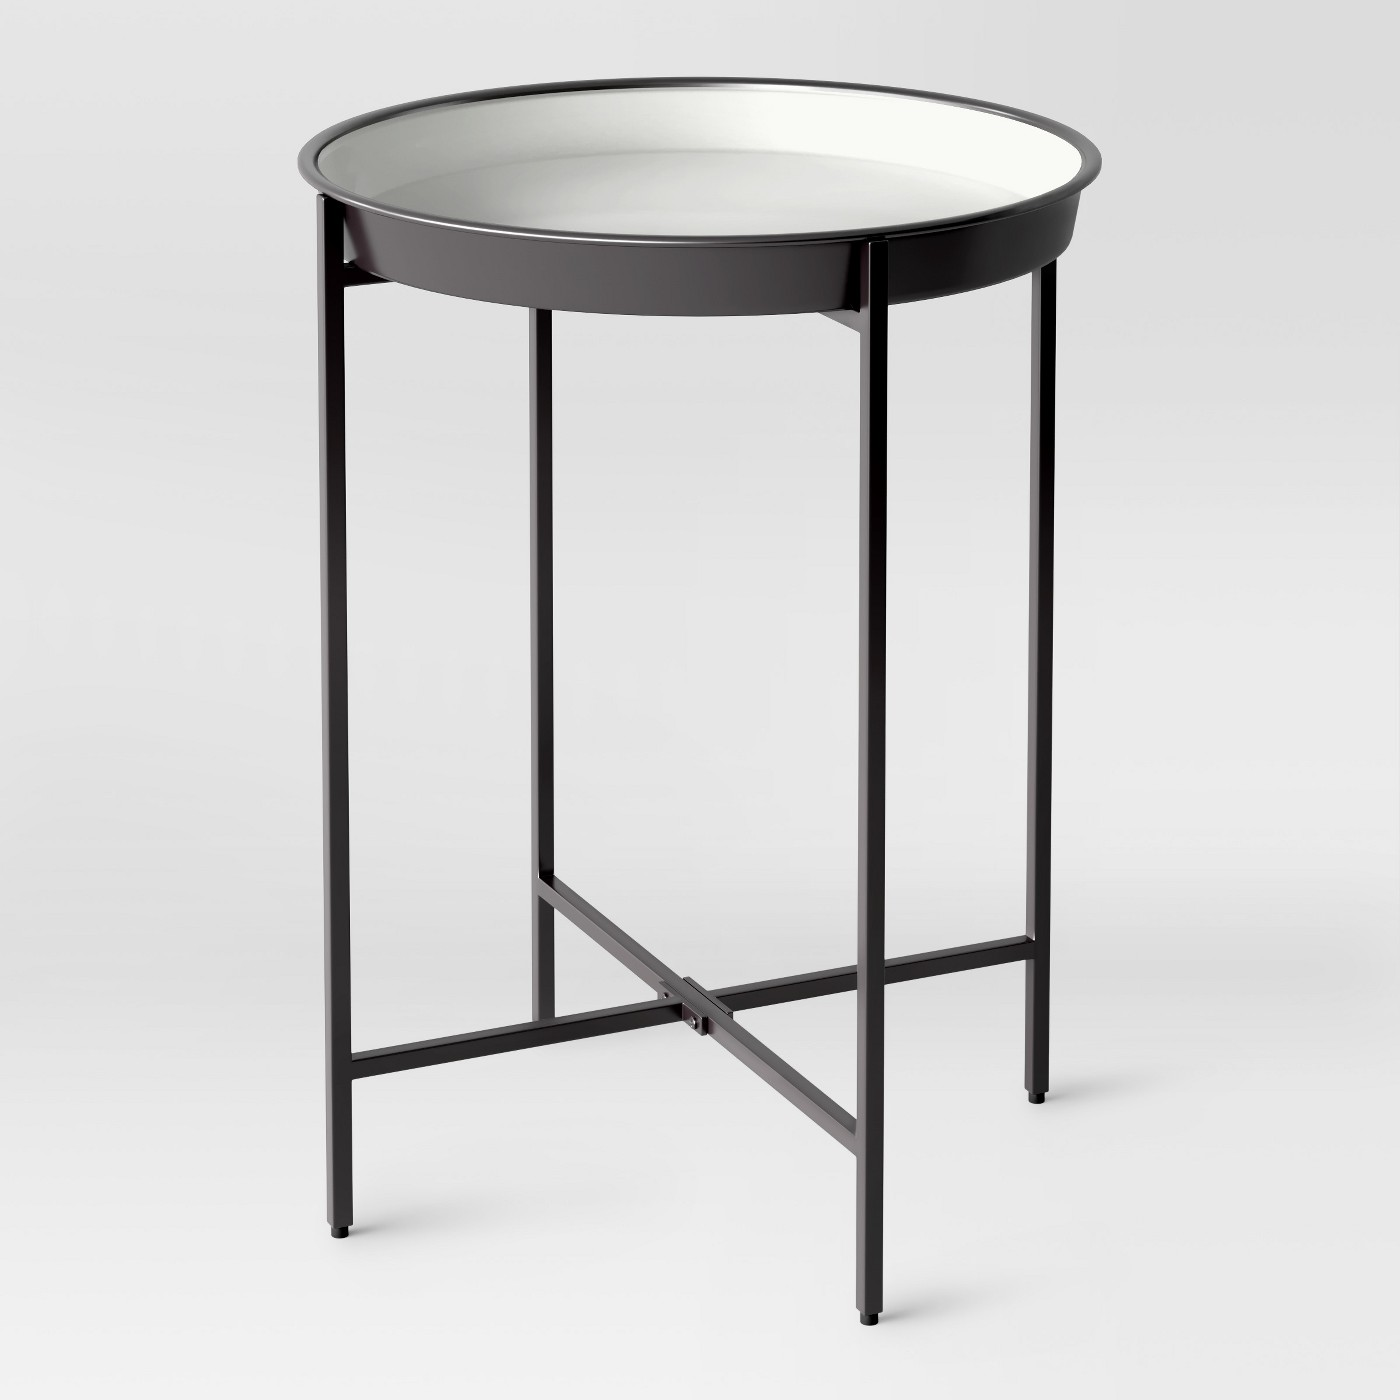 end tables target home that upgrade your living tachuri accent table room for less than glass coffee with storage ikea small bar height pub sets short side affordable outdoor